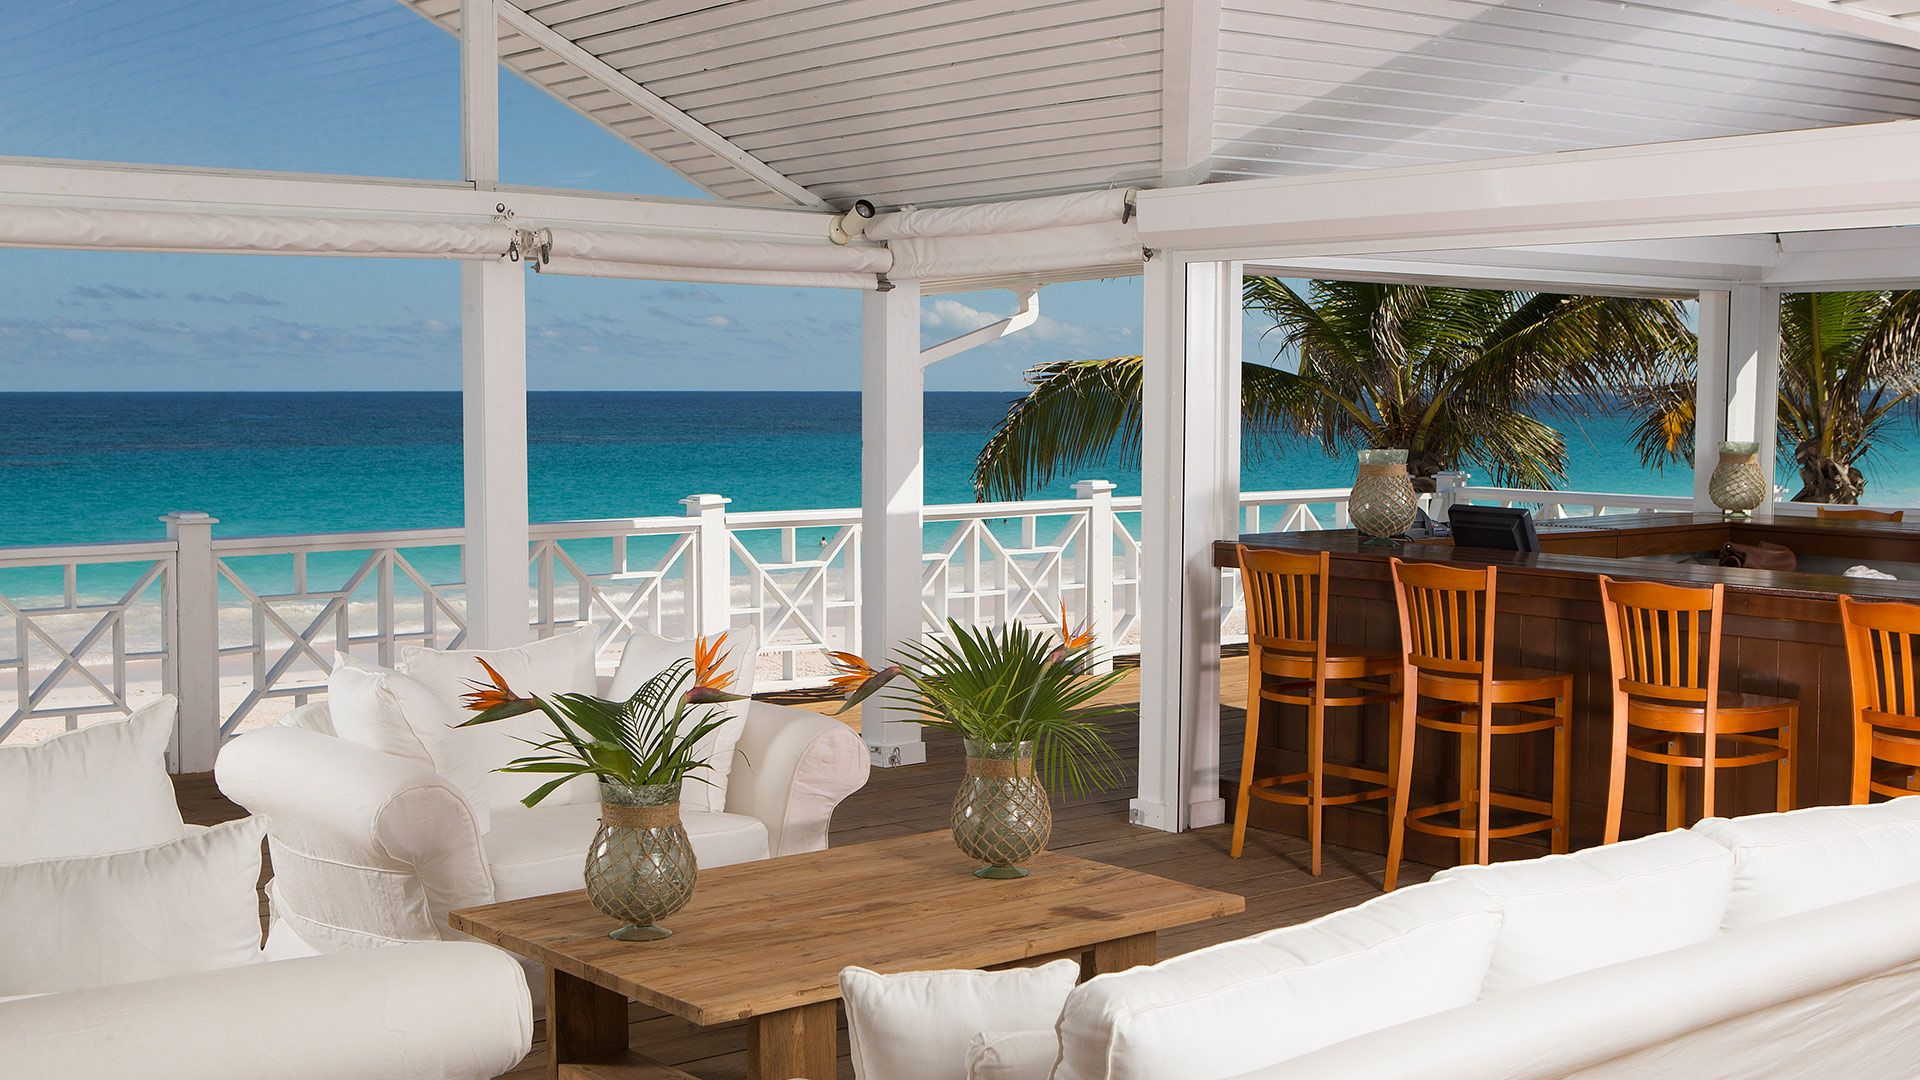 See More Information About C Sands Hotel Beachside Bar And Lounge